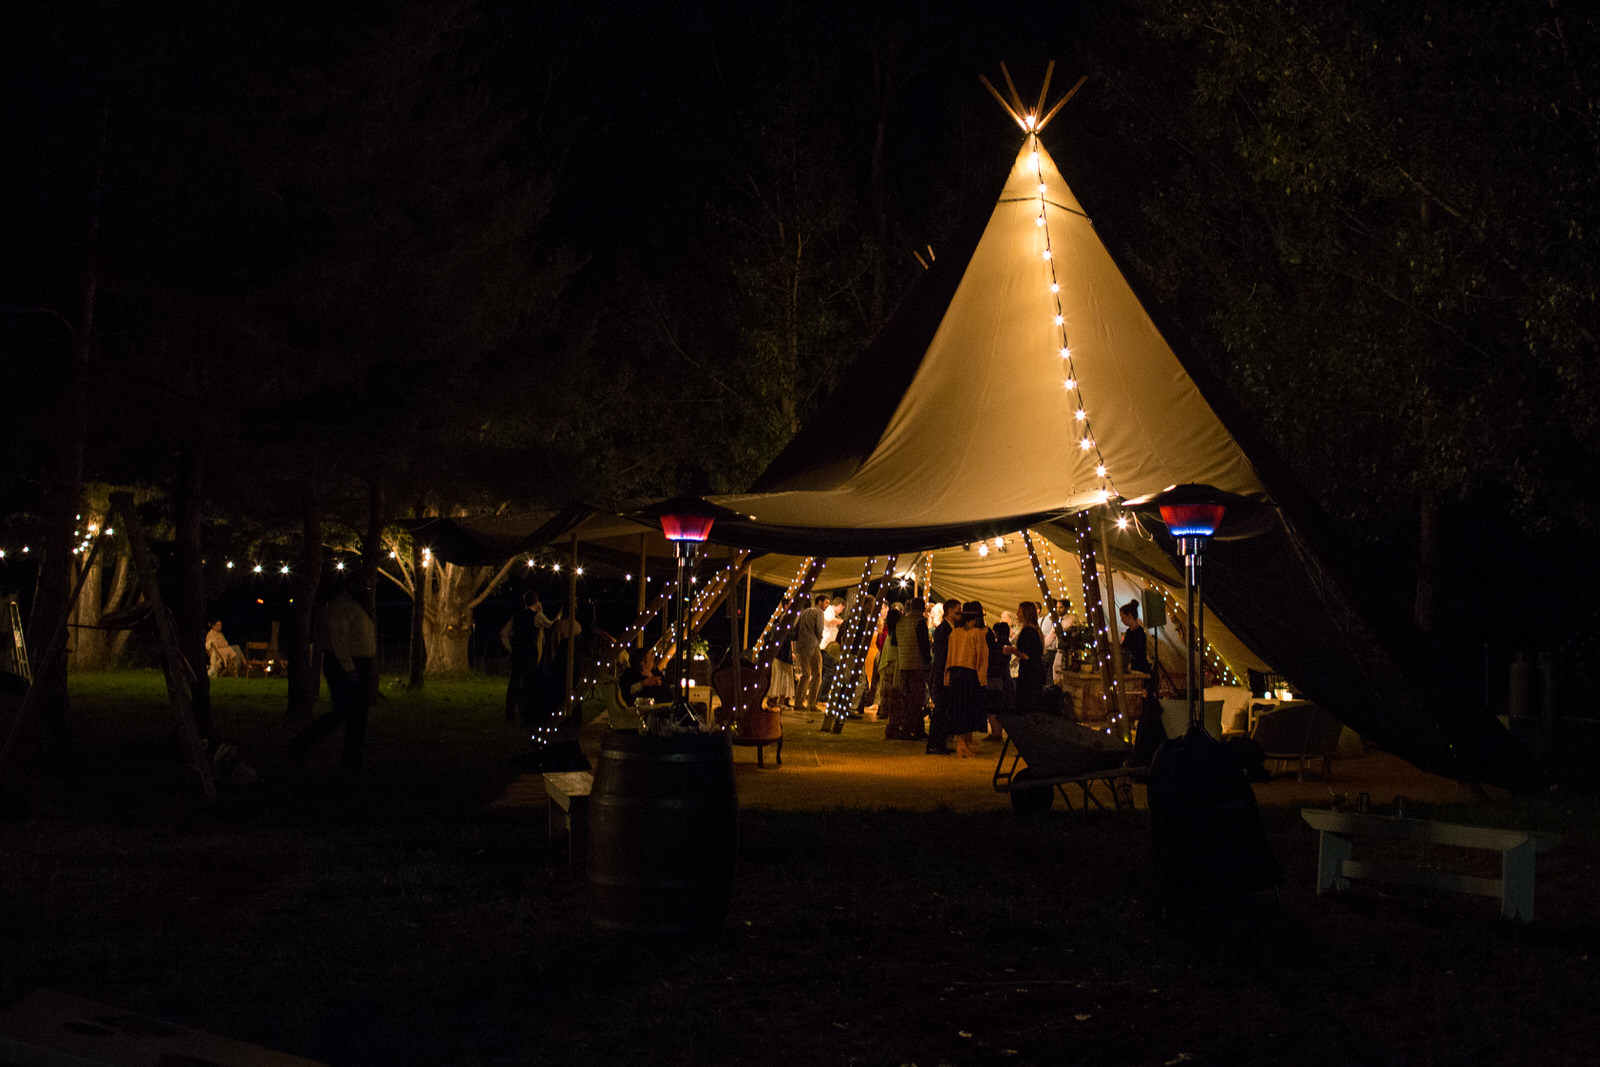 evening shot of a tee pee at milston well farm wedding with lights and heaters at an outdoor Colorado farm wedding